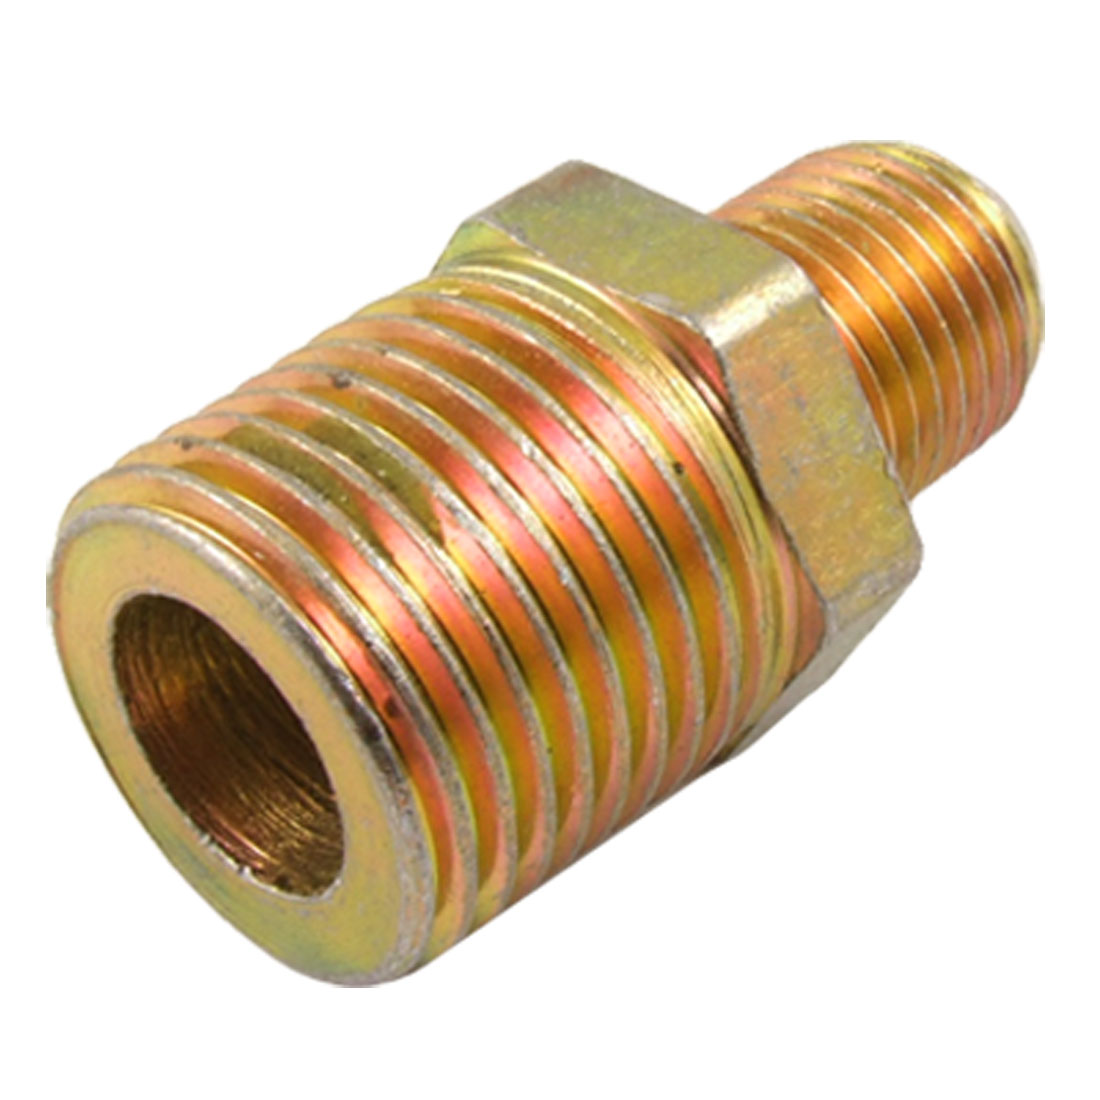 "Hydraulic Tube Fitting 5/16"" Male Flare x 4/5"" Pipe Thread Half Union Connector"